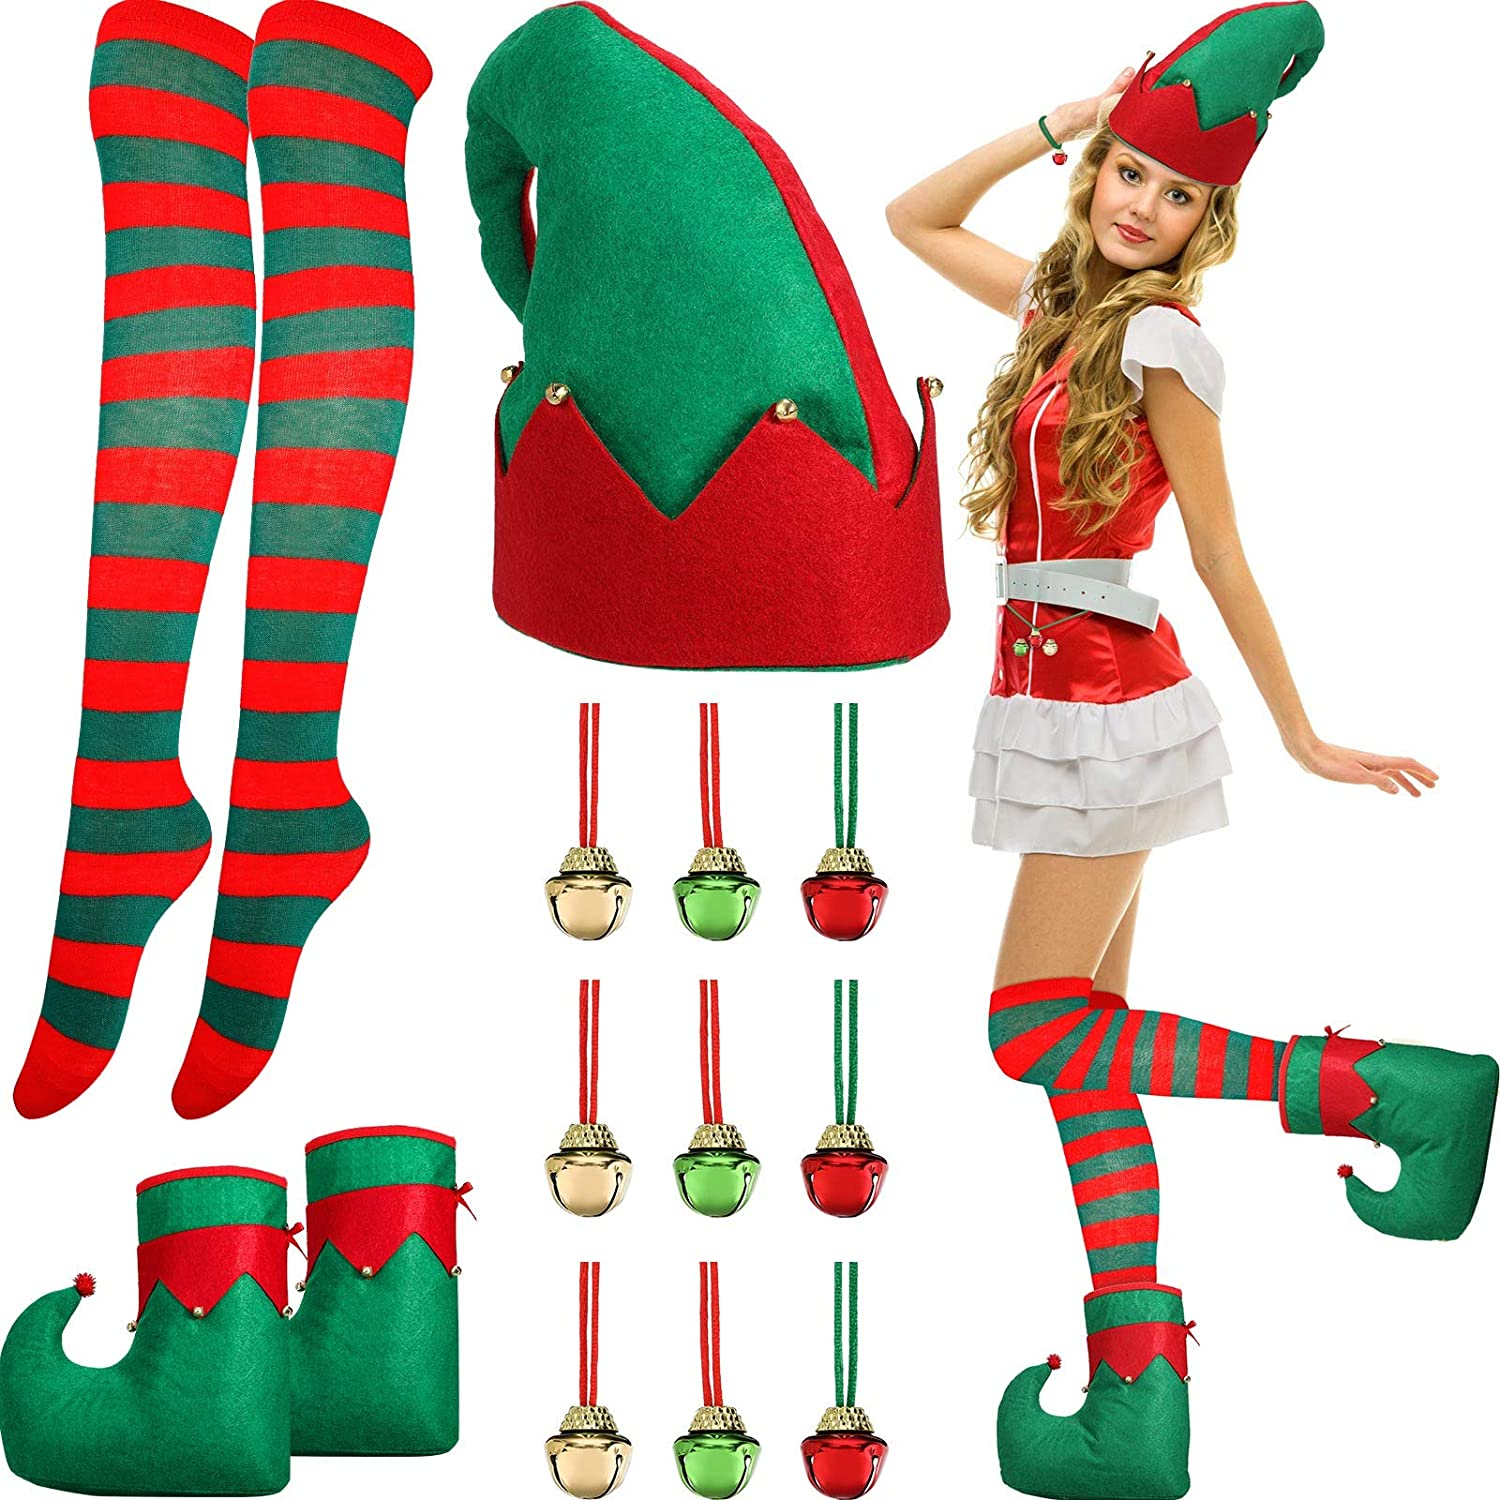 Christmas Costume Accessories Santa Elf Costume Set Includes Santa Elf Hat Jingle Bell Elf Shoes Christmas Red and Green Striped Knee Stocking